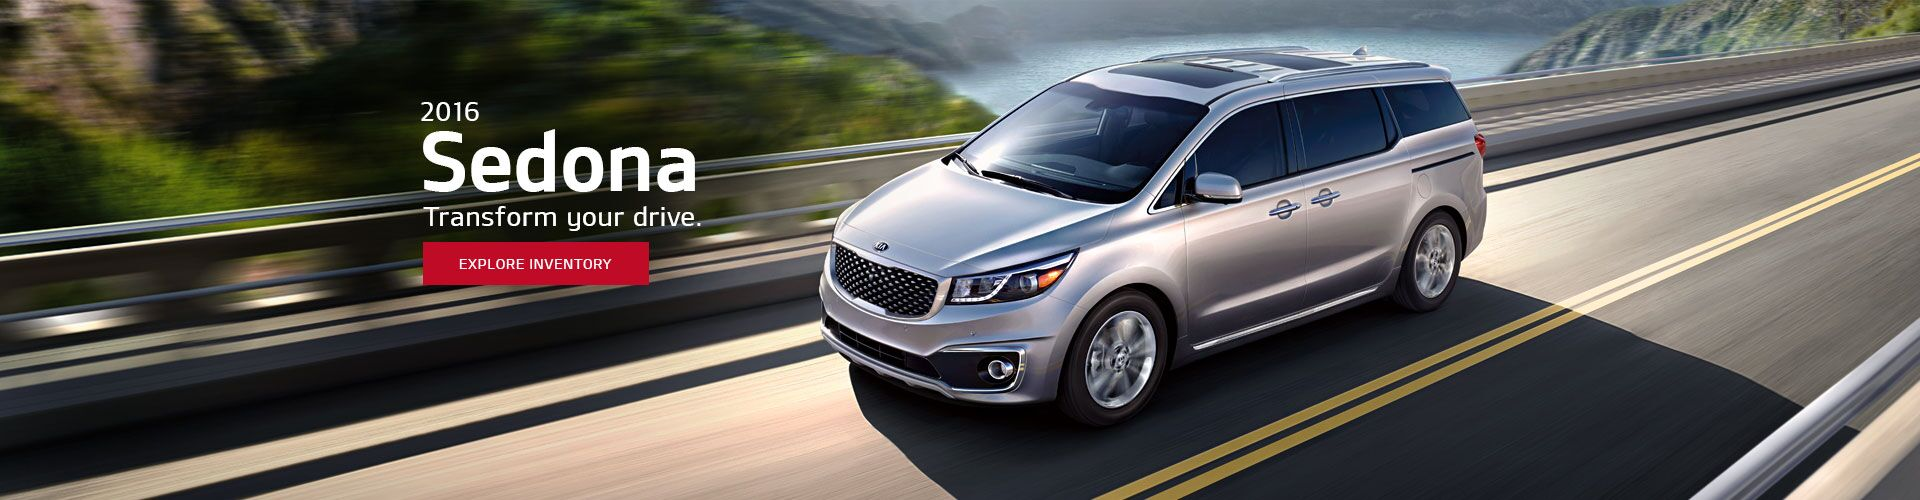 New Kia Sedona at Warrenton Kia